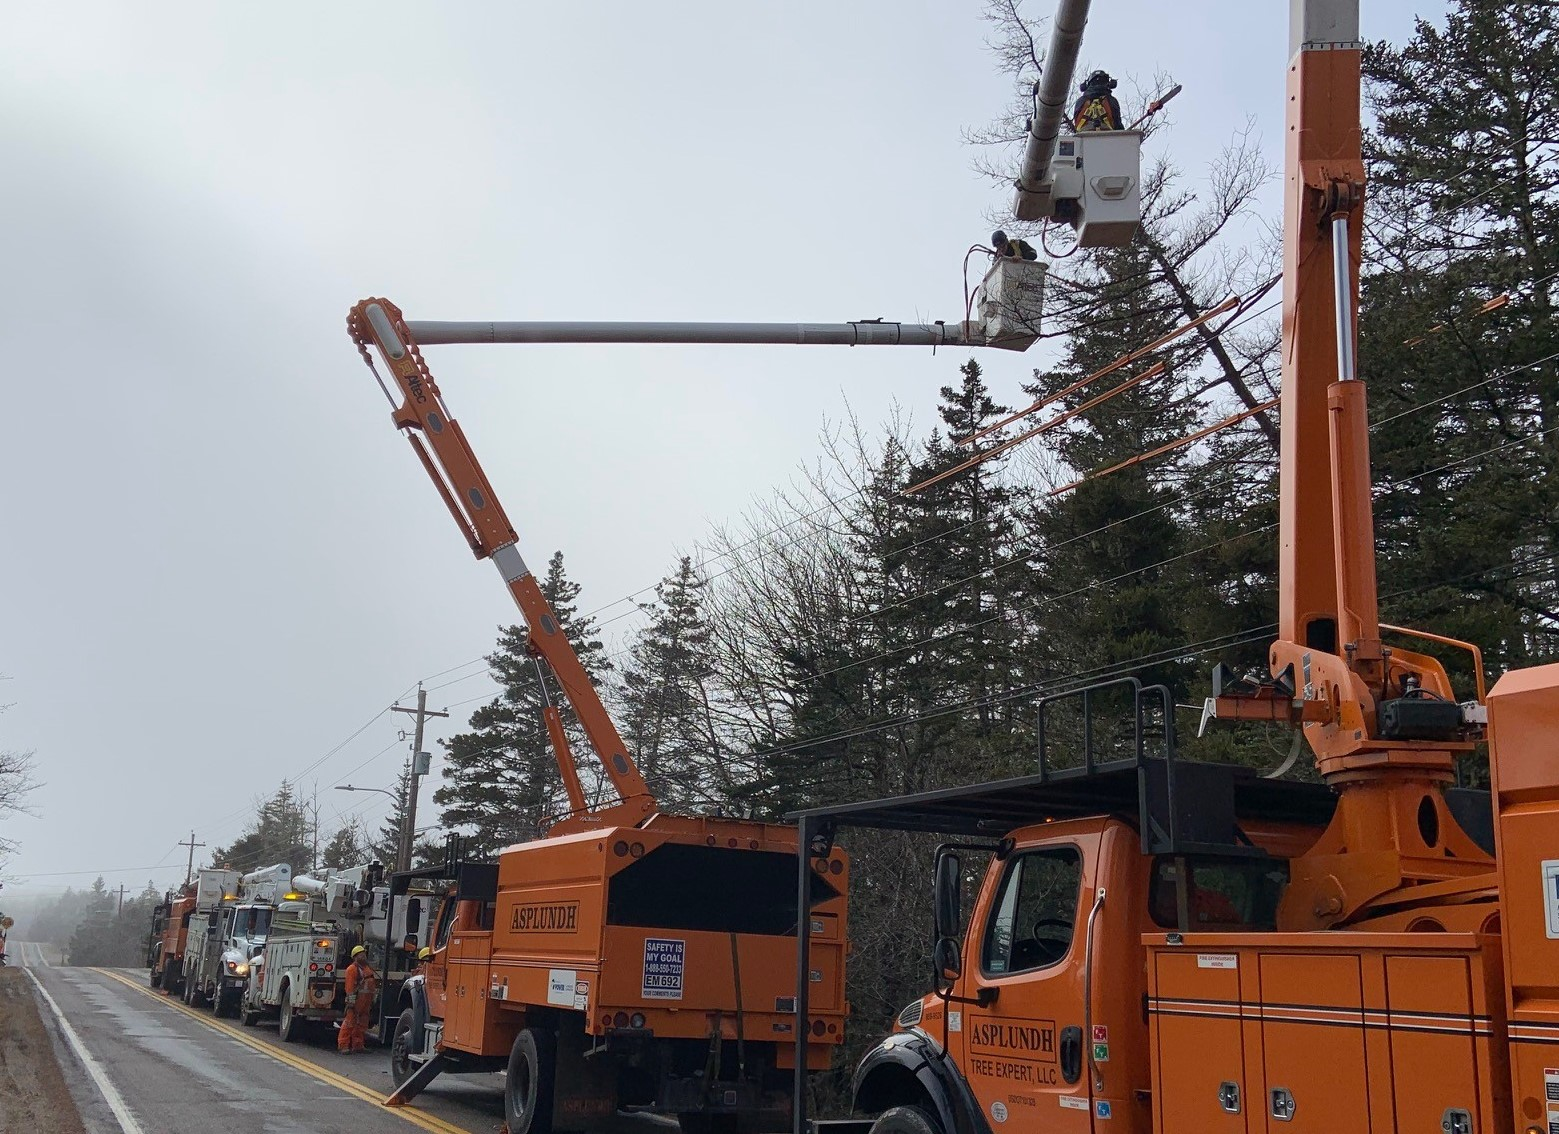 Staff members working to restore power after the storm